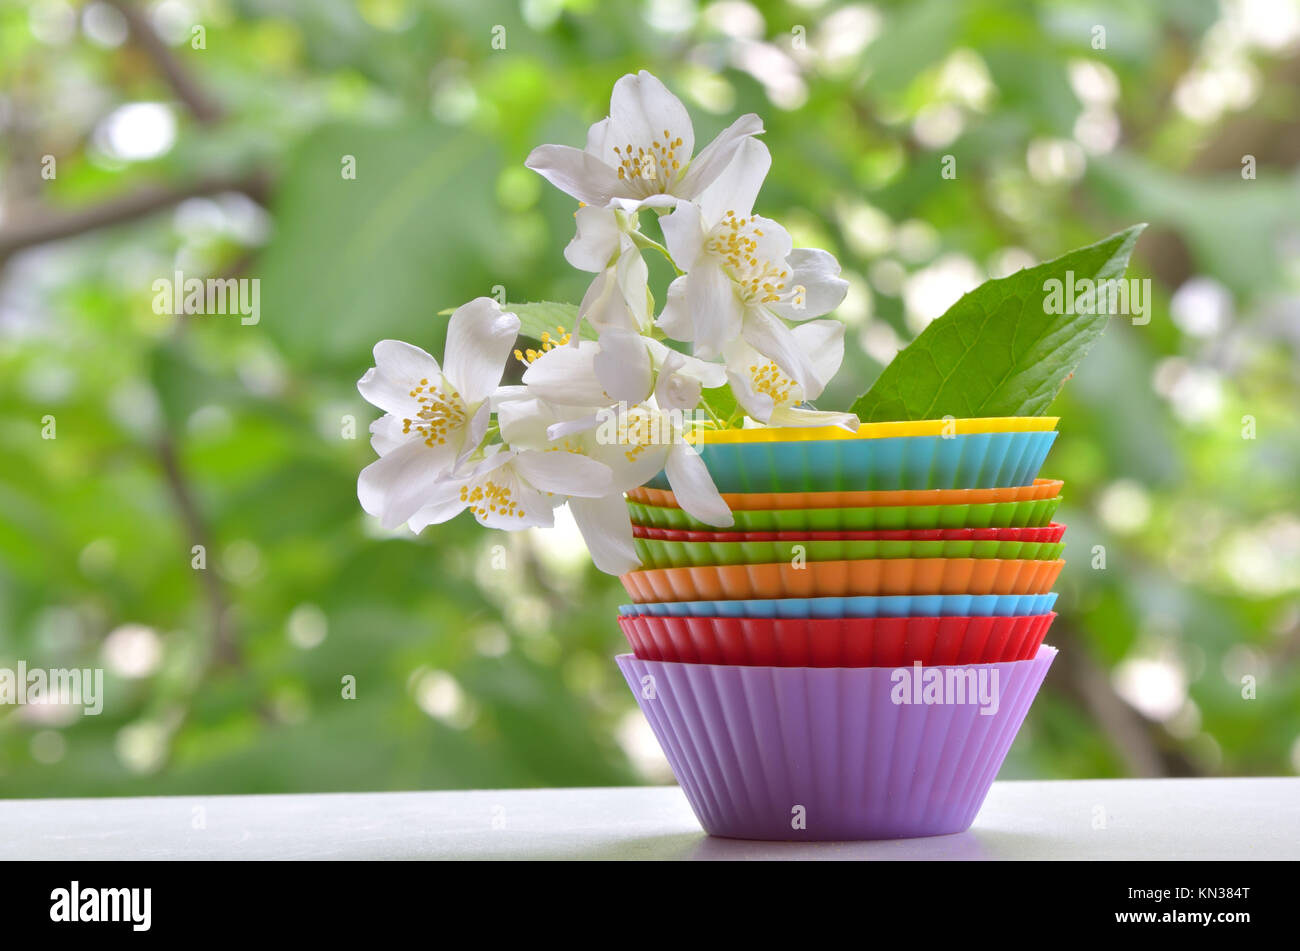 Jasmine flower aromatherapy stock photos jasmine flower types of muffins with jasmine flower shoot on natural background stock image izmirmasajfo